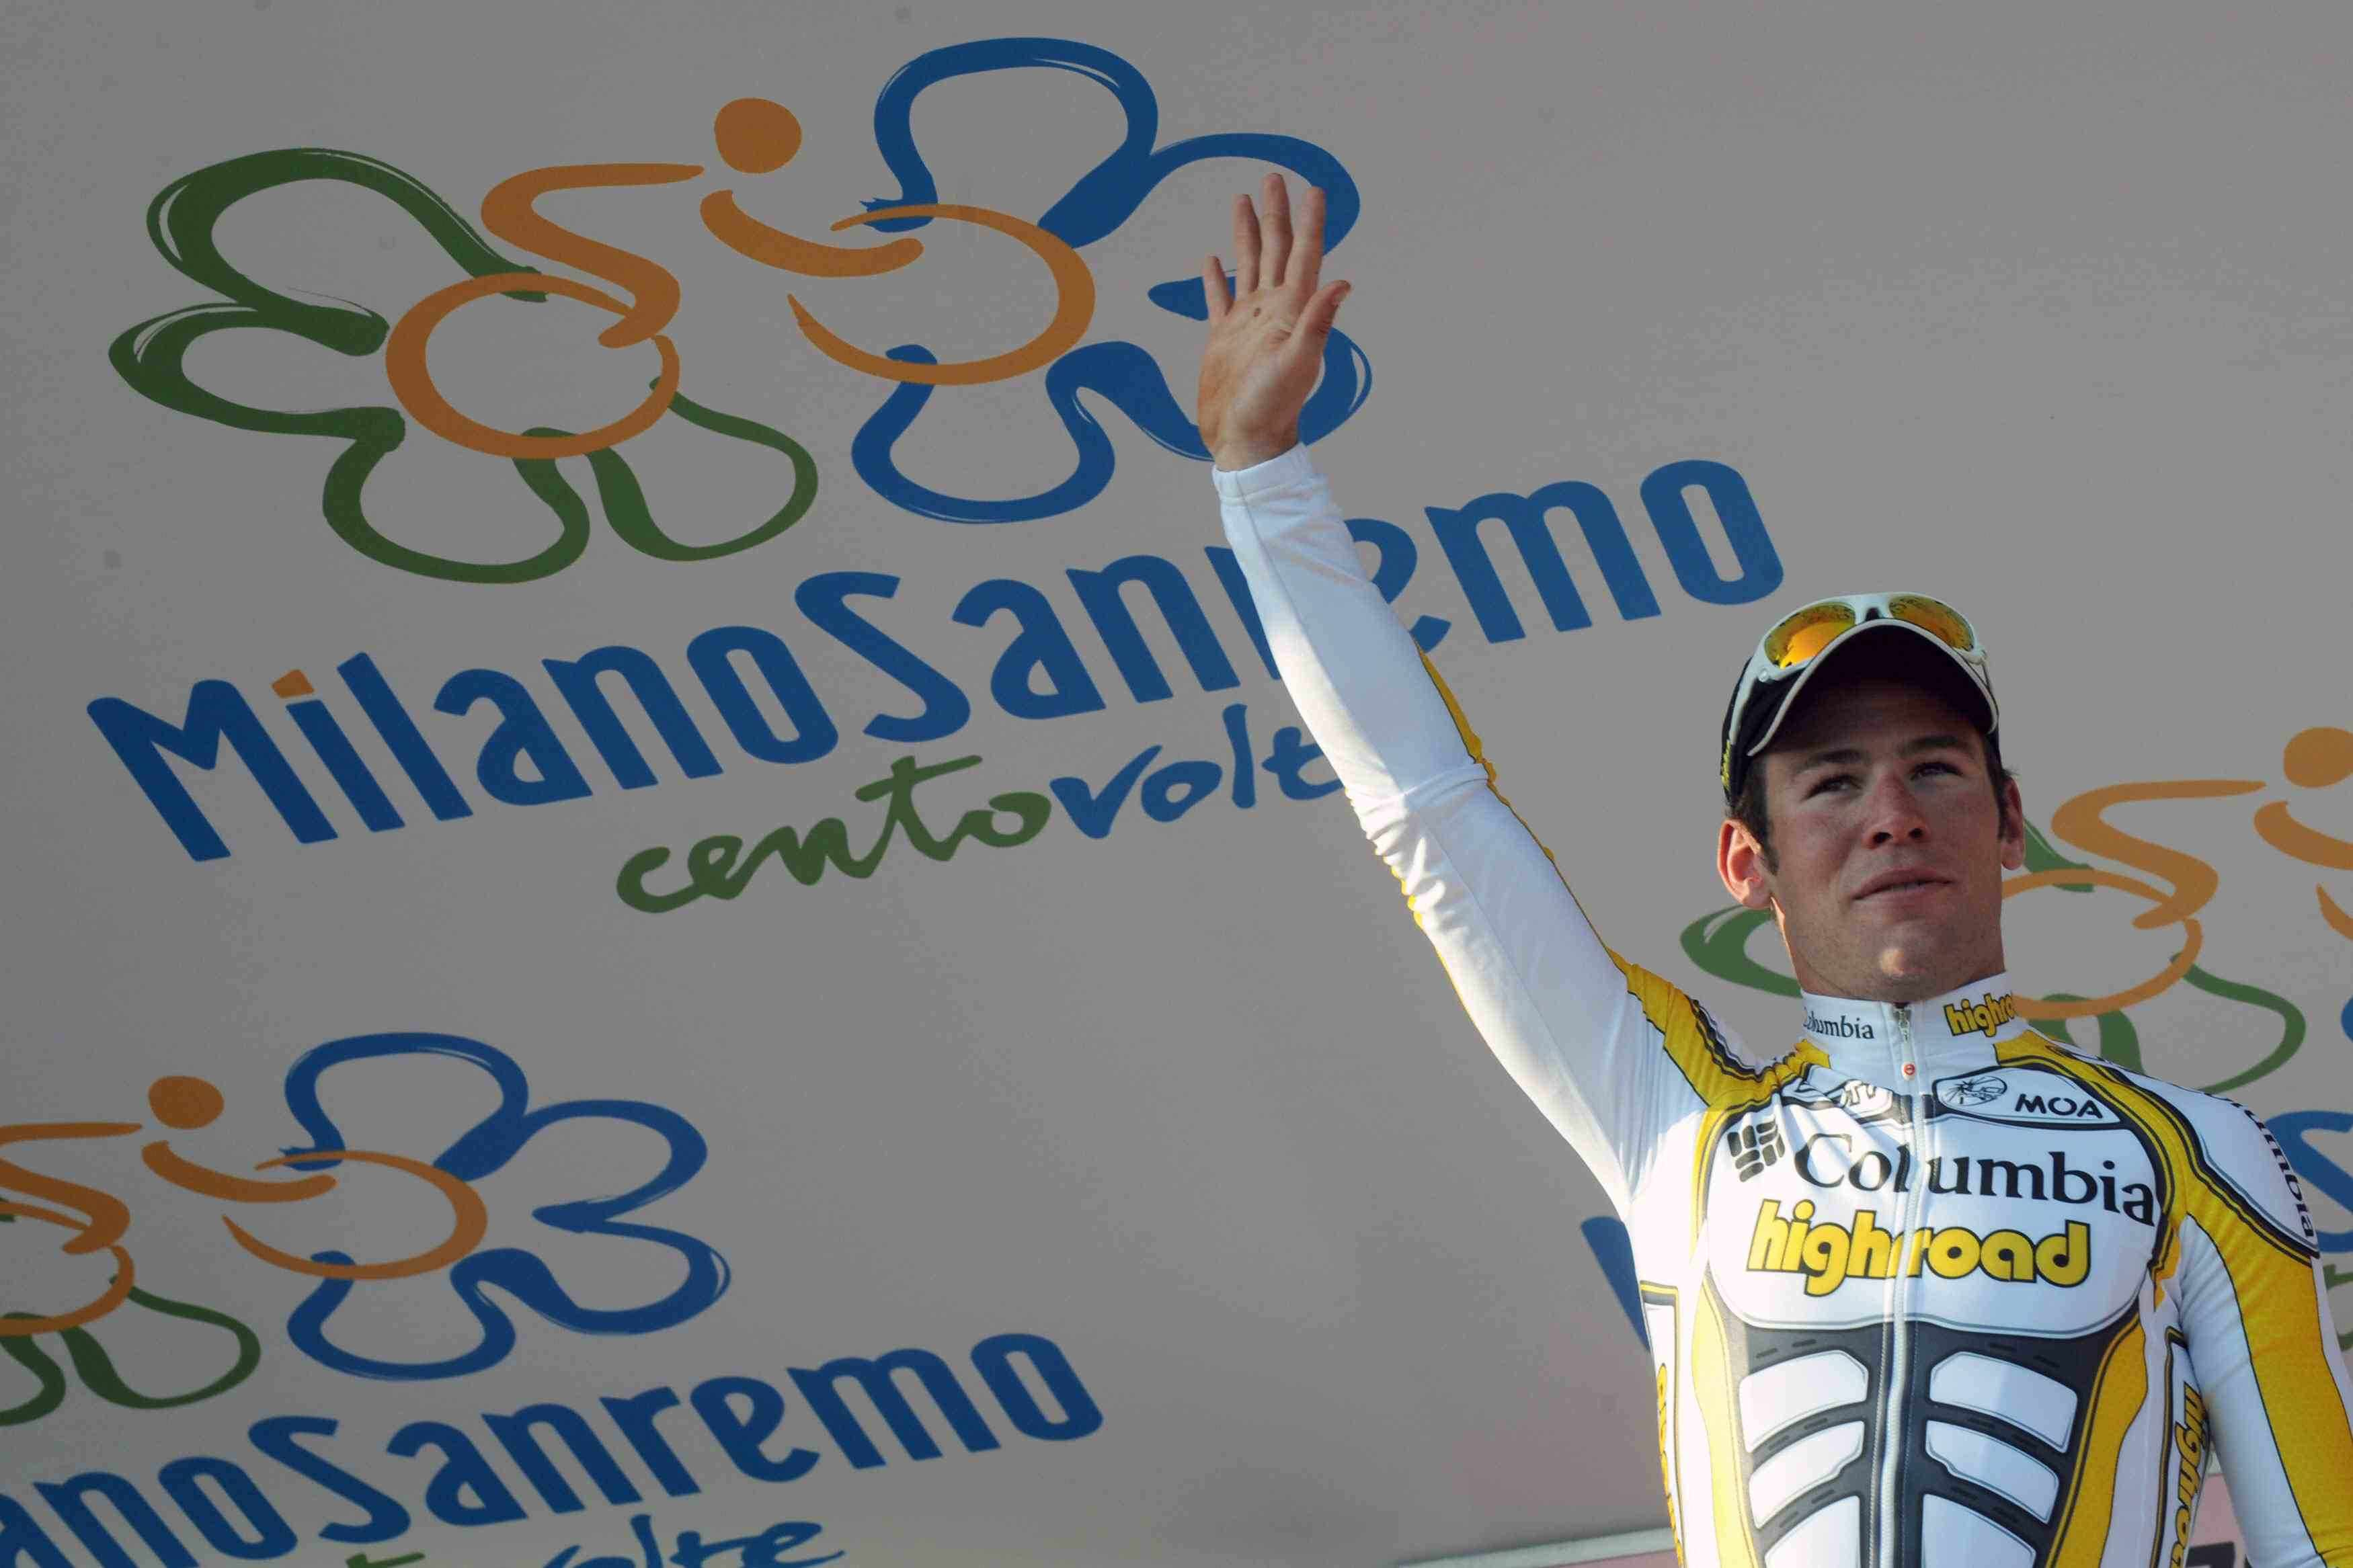 Mark Cavendish enjoys the winner's podium at Milan-San Remo.